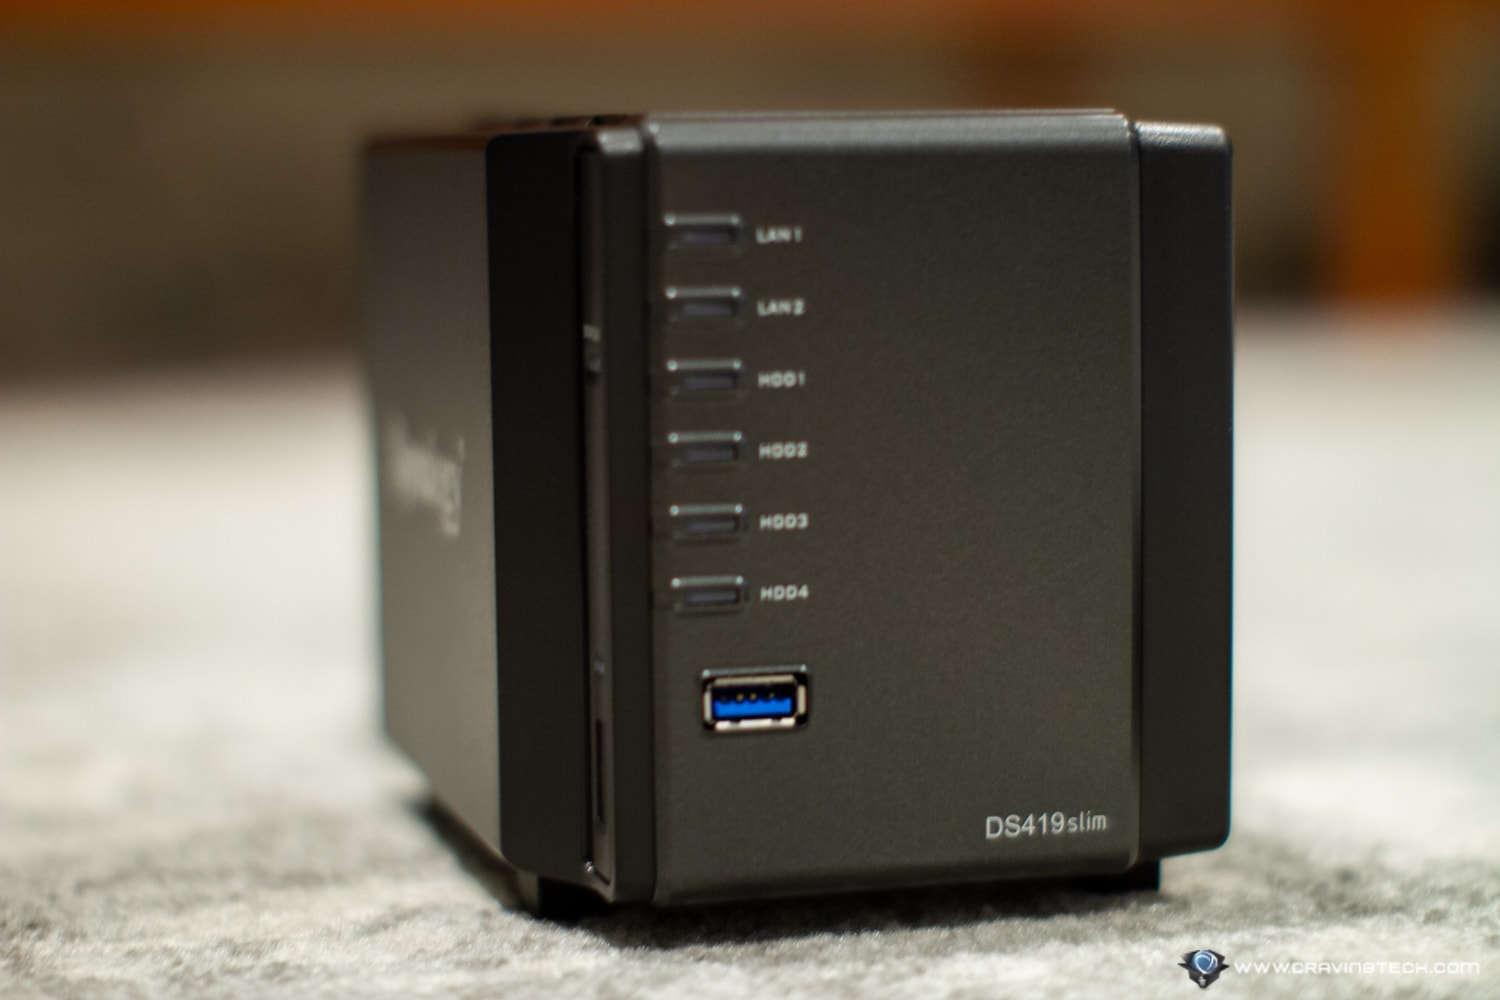 Synology DiskStation DS419slim Review